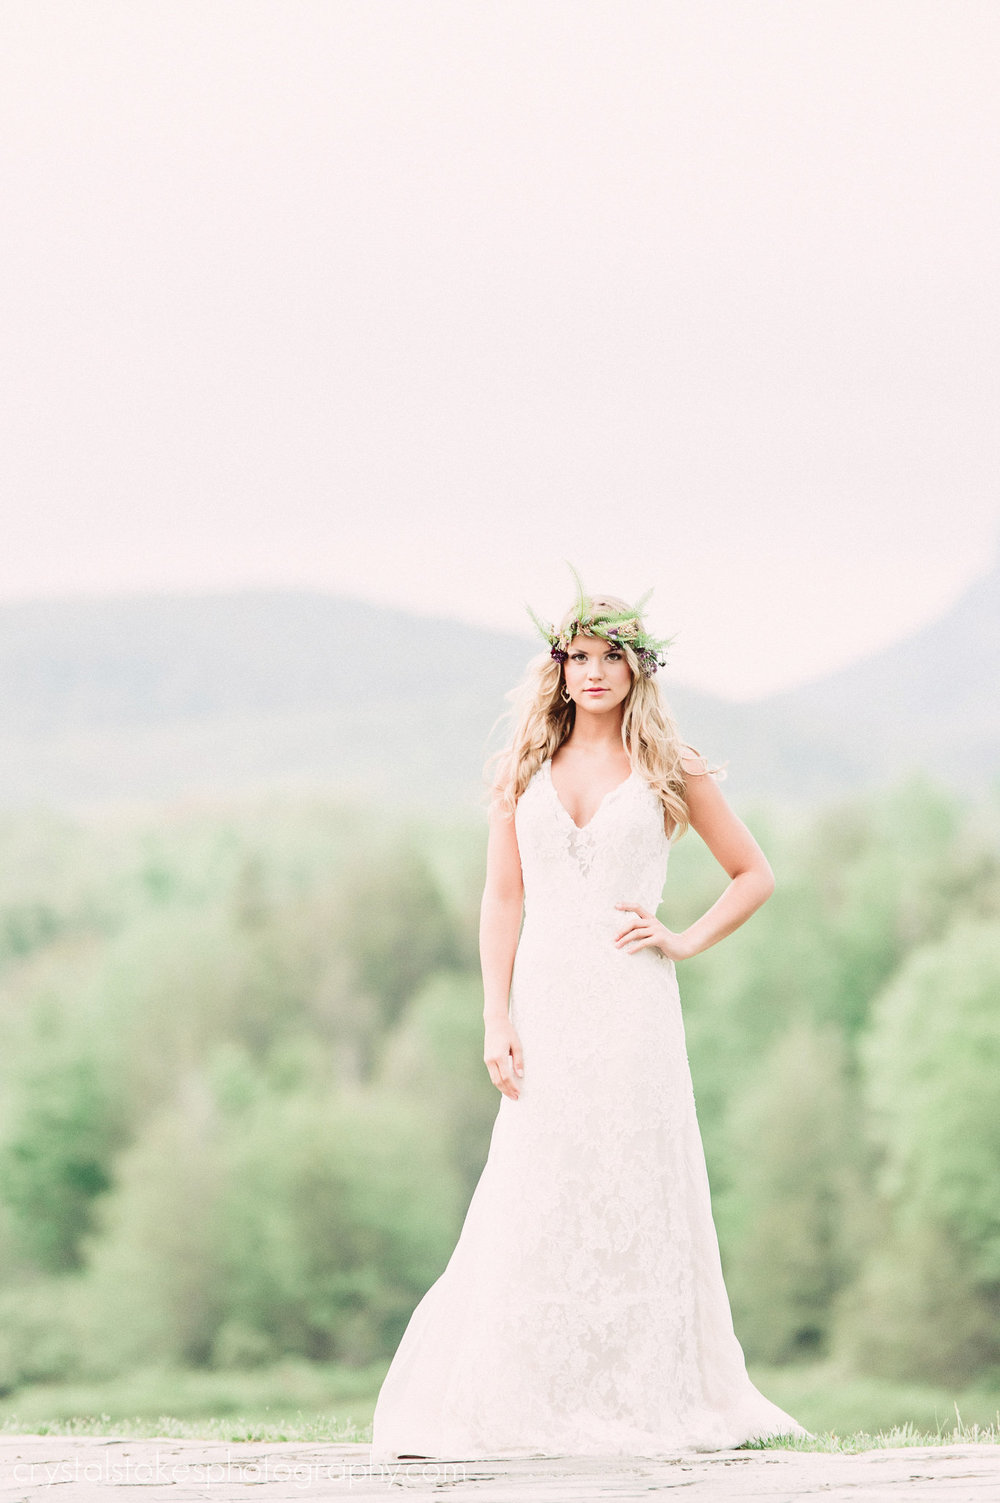 Boho_Mountain_Wedding_Inspiration.jpg